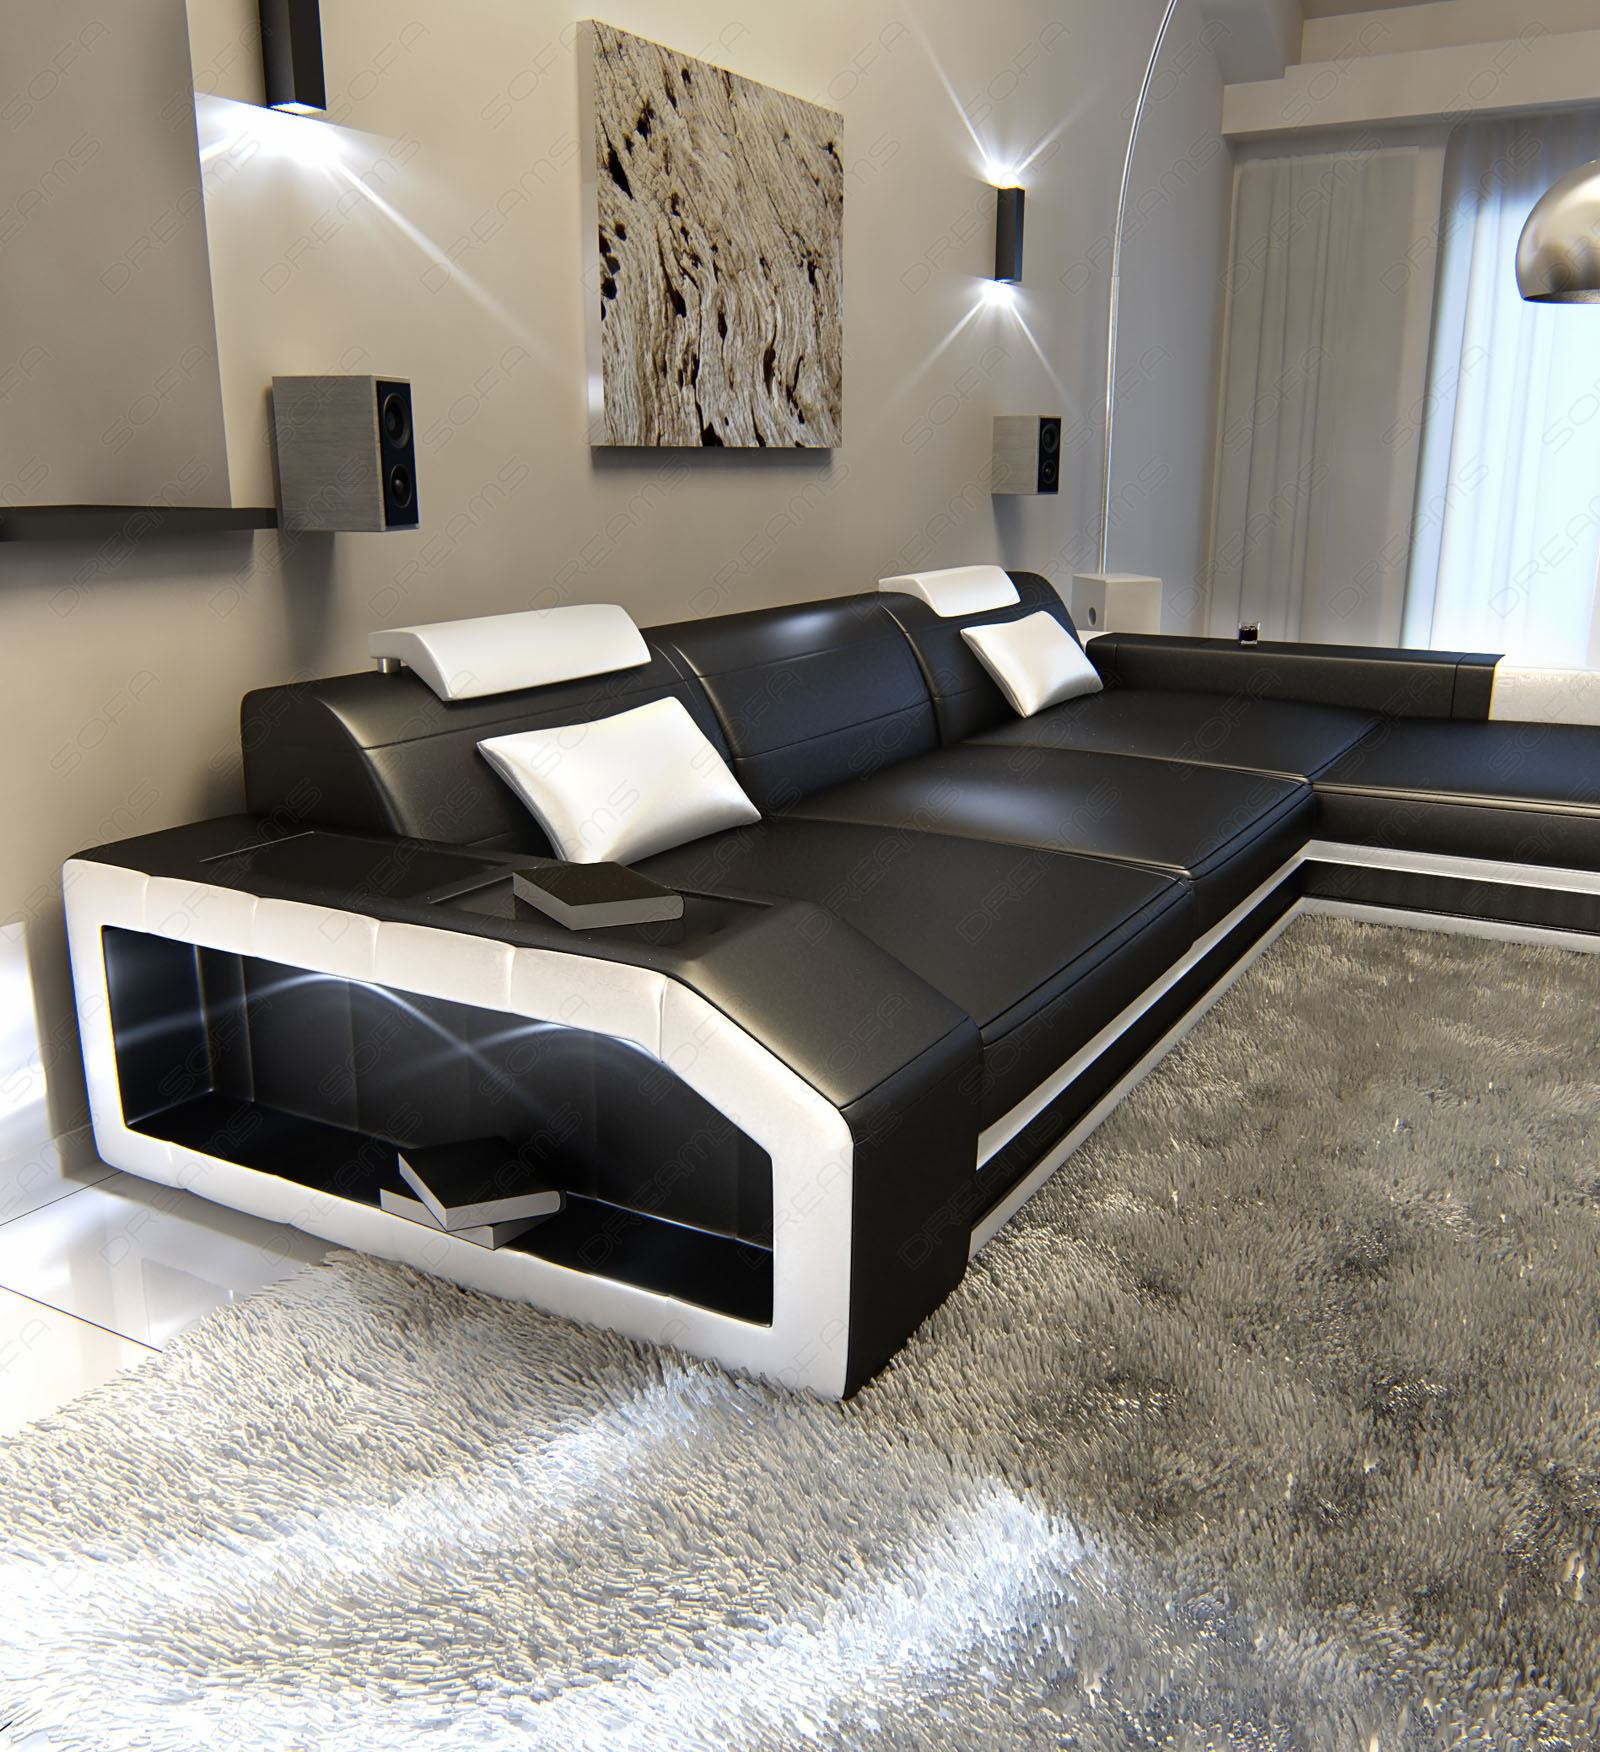 ledercouch weiss simple ledercouch brandenburg u form mit led beigeweiss with ledercouch weiss. Black Bedroom Furniture Sets. Home Design Ideas